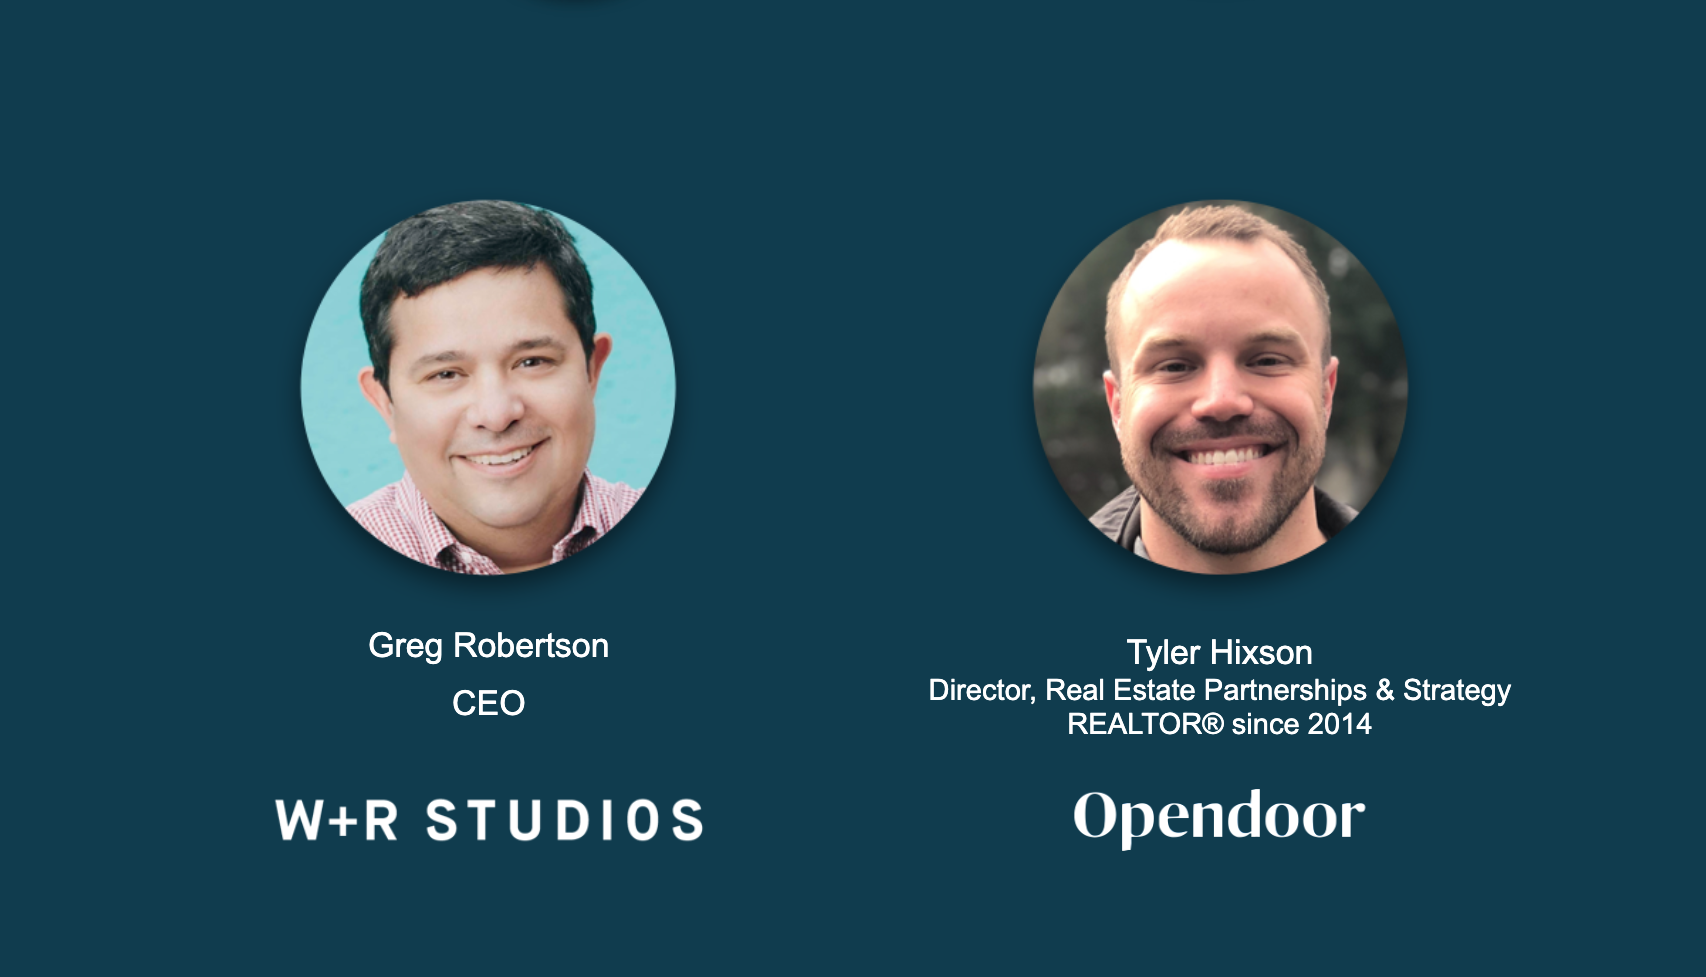 W+R Studios CEO Greg Robertson and Opendoor Director of Real Estate Strategy Tyler Hixson